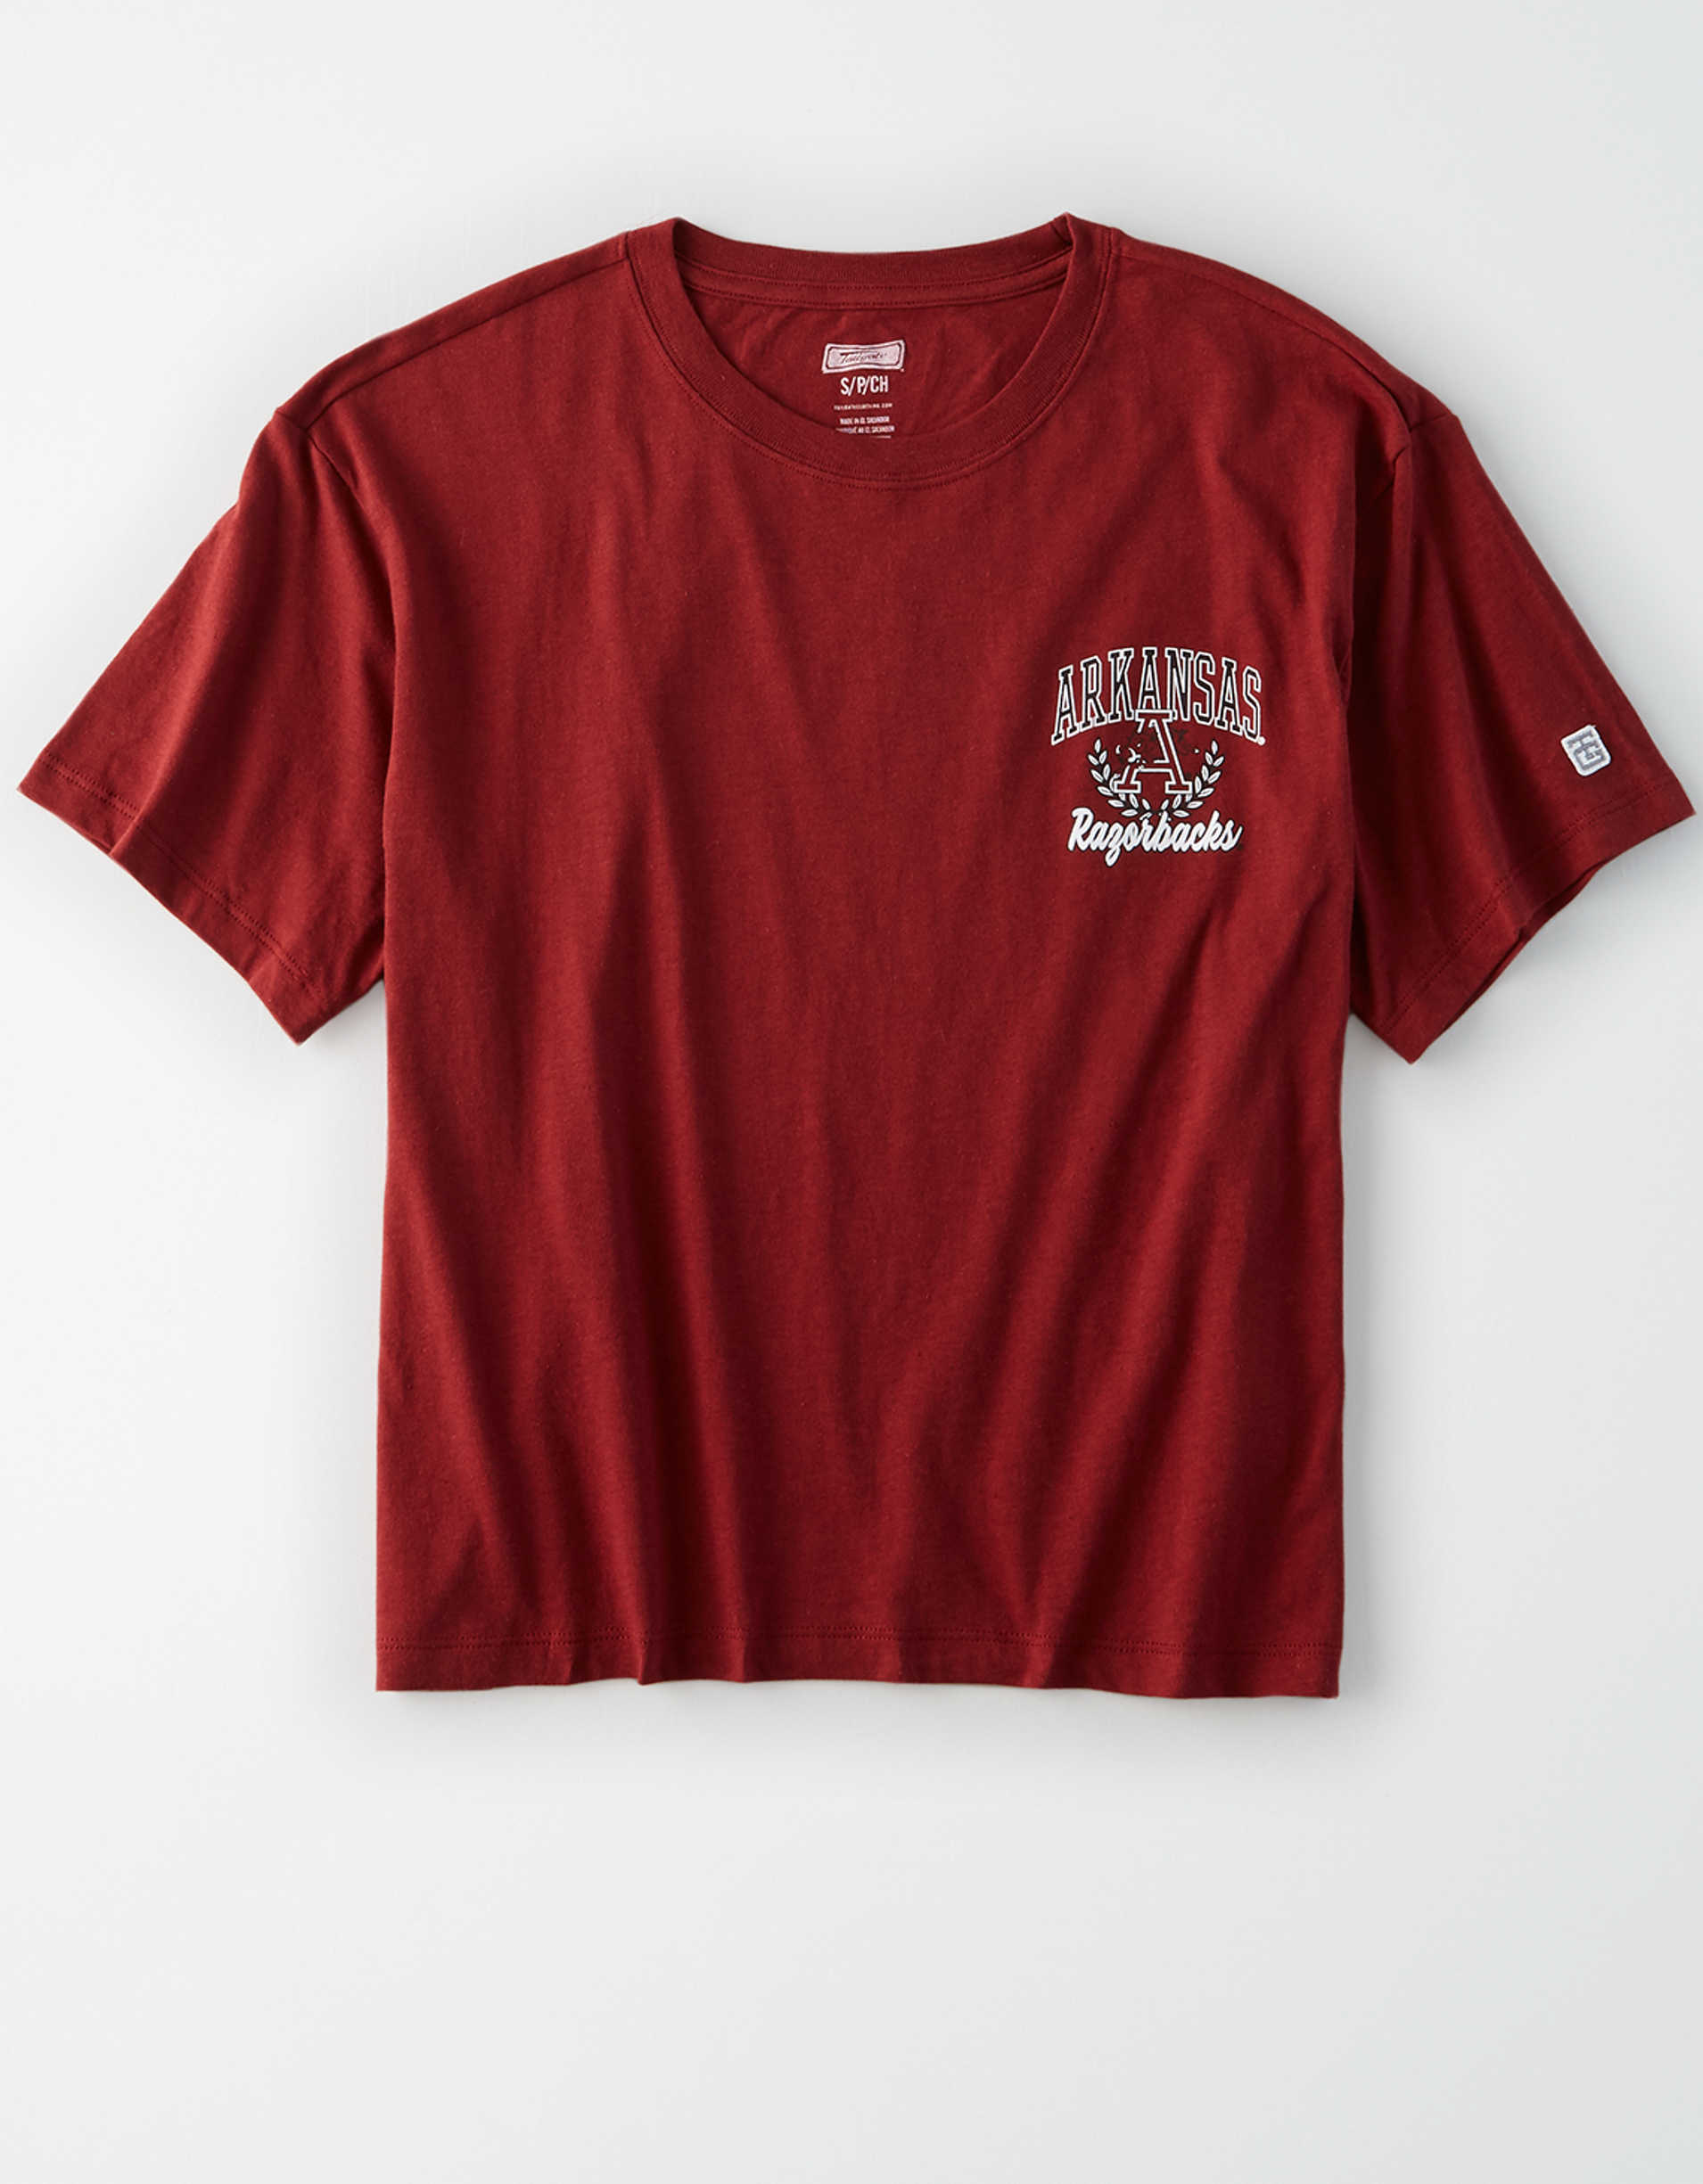 Tailgate Women's Arkansas Razorbacks Cropped T-Shirt